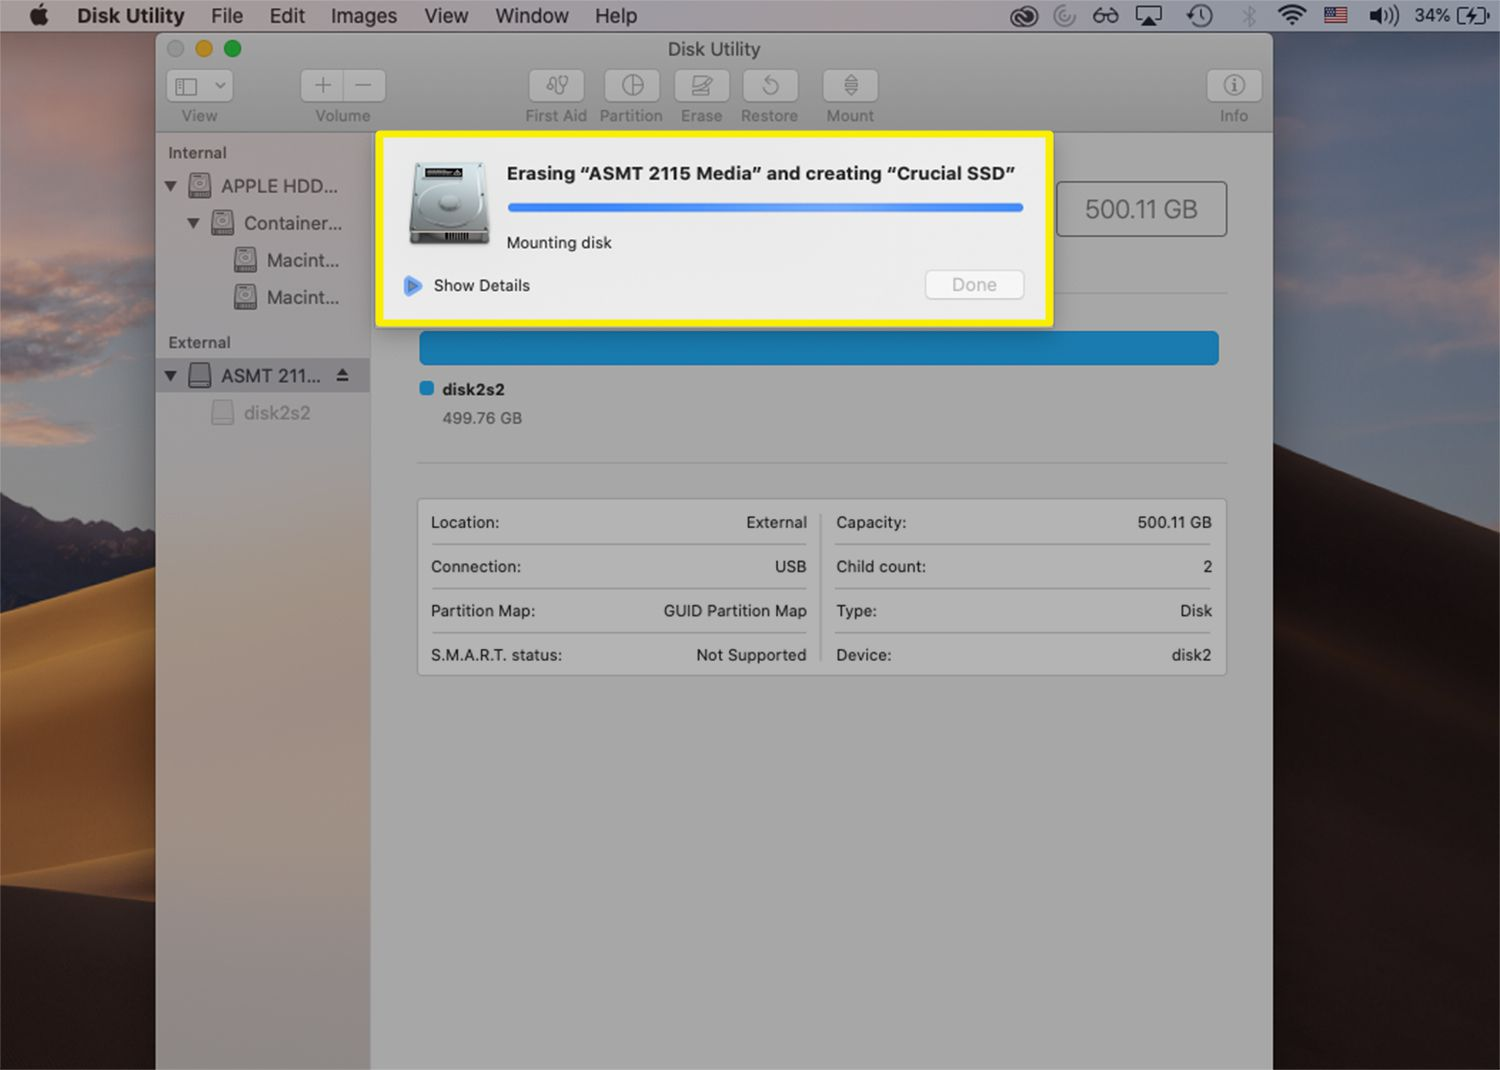 Disk Utility on macOS erasing and formatting an external drive